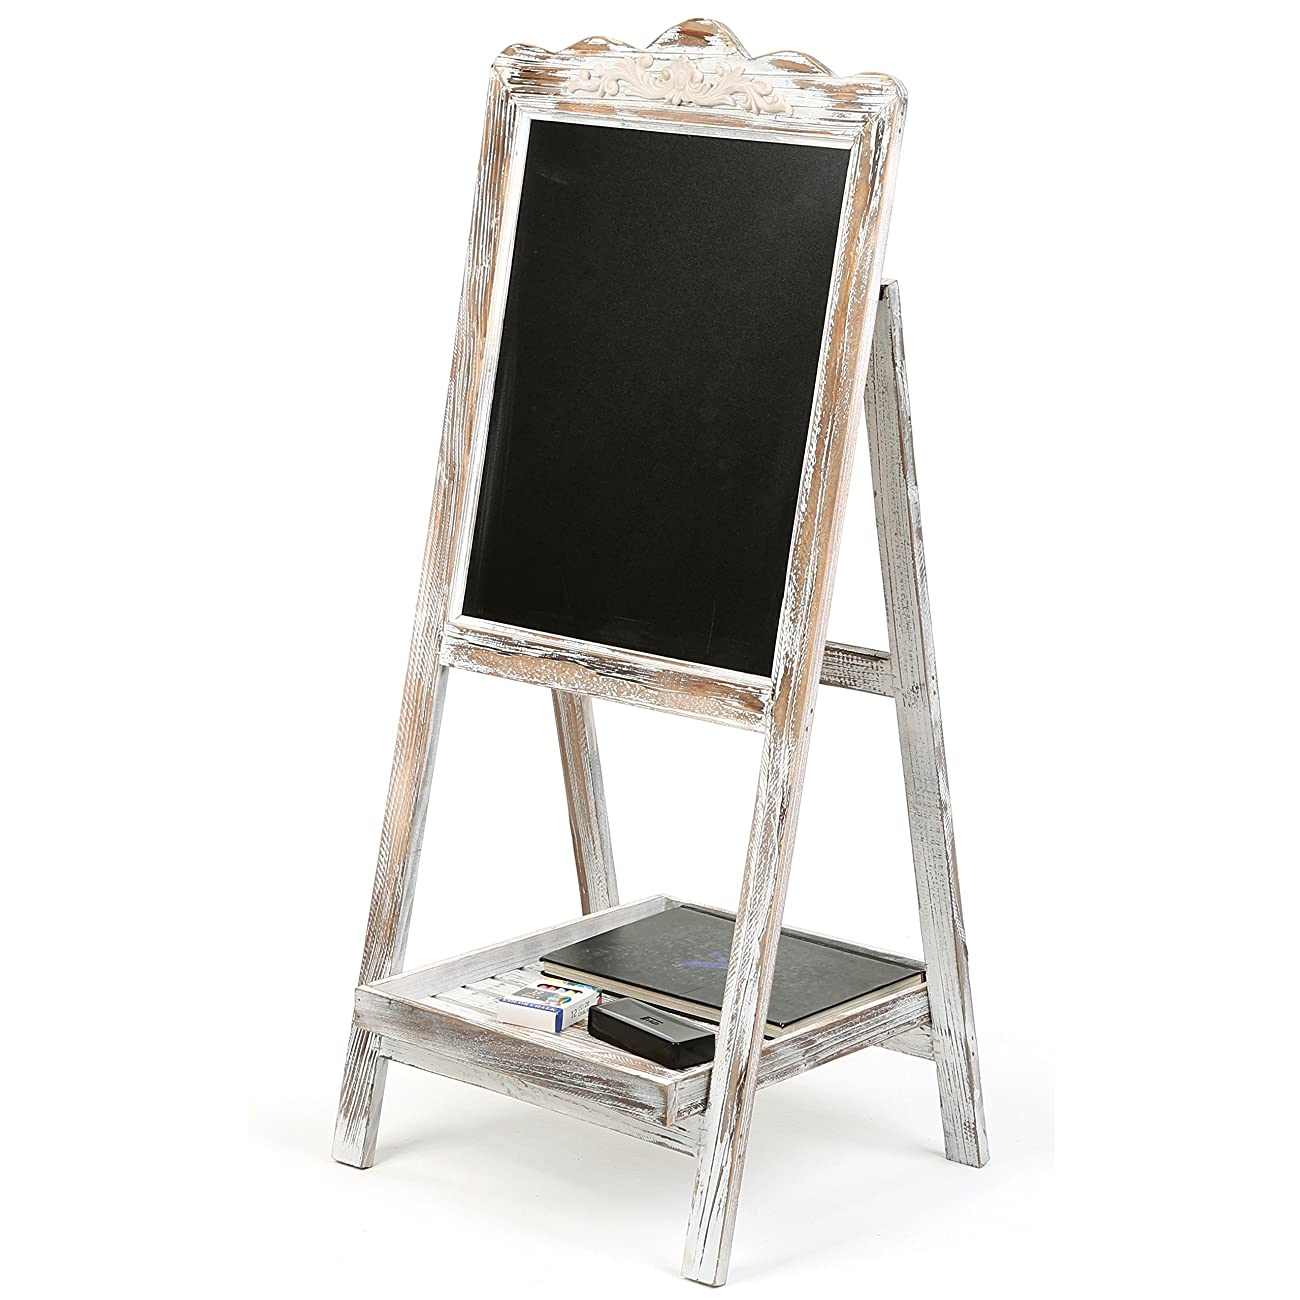 MyGift Vintage Style White Washed Brown Wood Chalk Board Easel / Freestanding Guest Message Sign Board 3